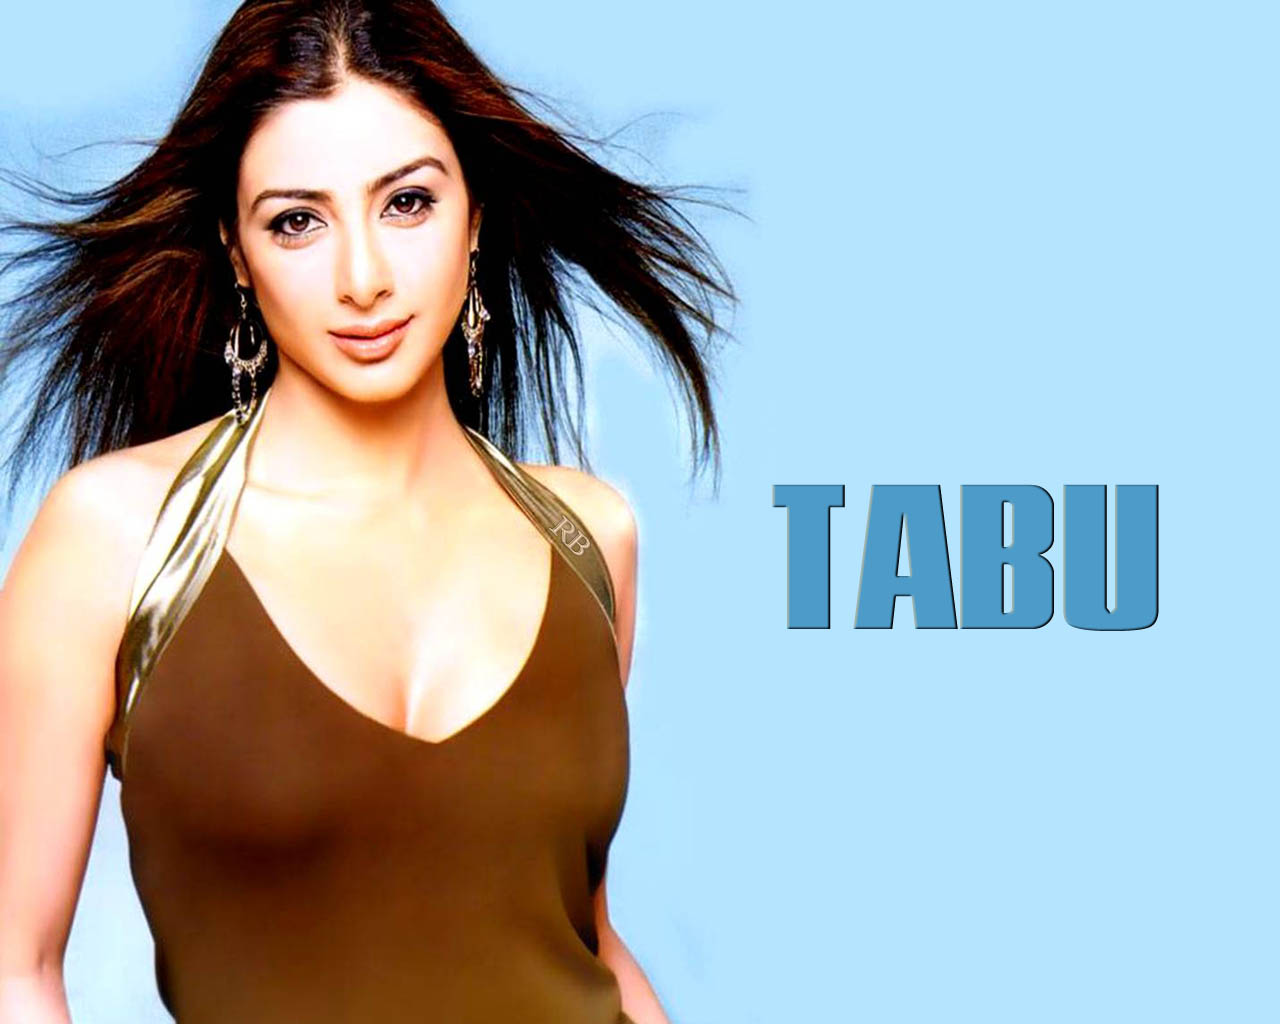 Www Tabu Wallpaperss Hd Com: Wallpaper S For Mobile And PC: Tabu HD Wallpapers For